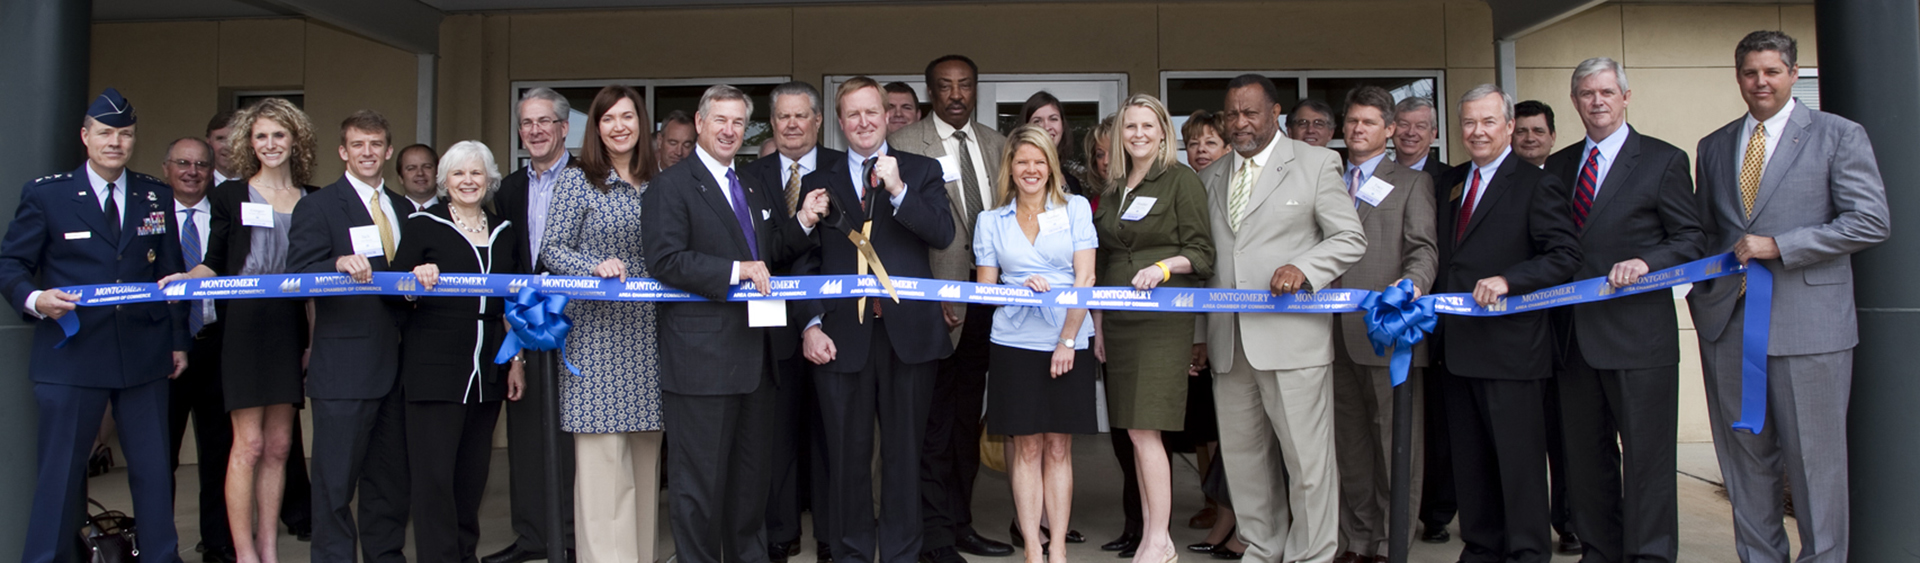 SBRC-Ribbon-Cutting.jpg